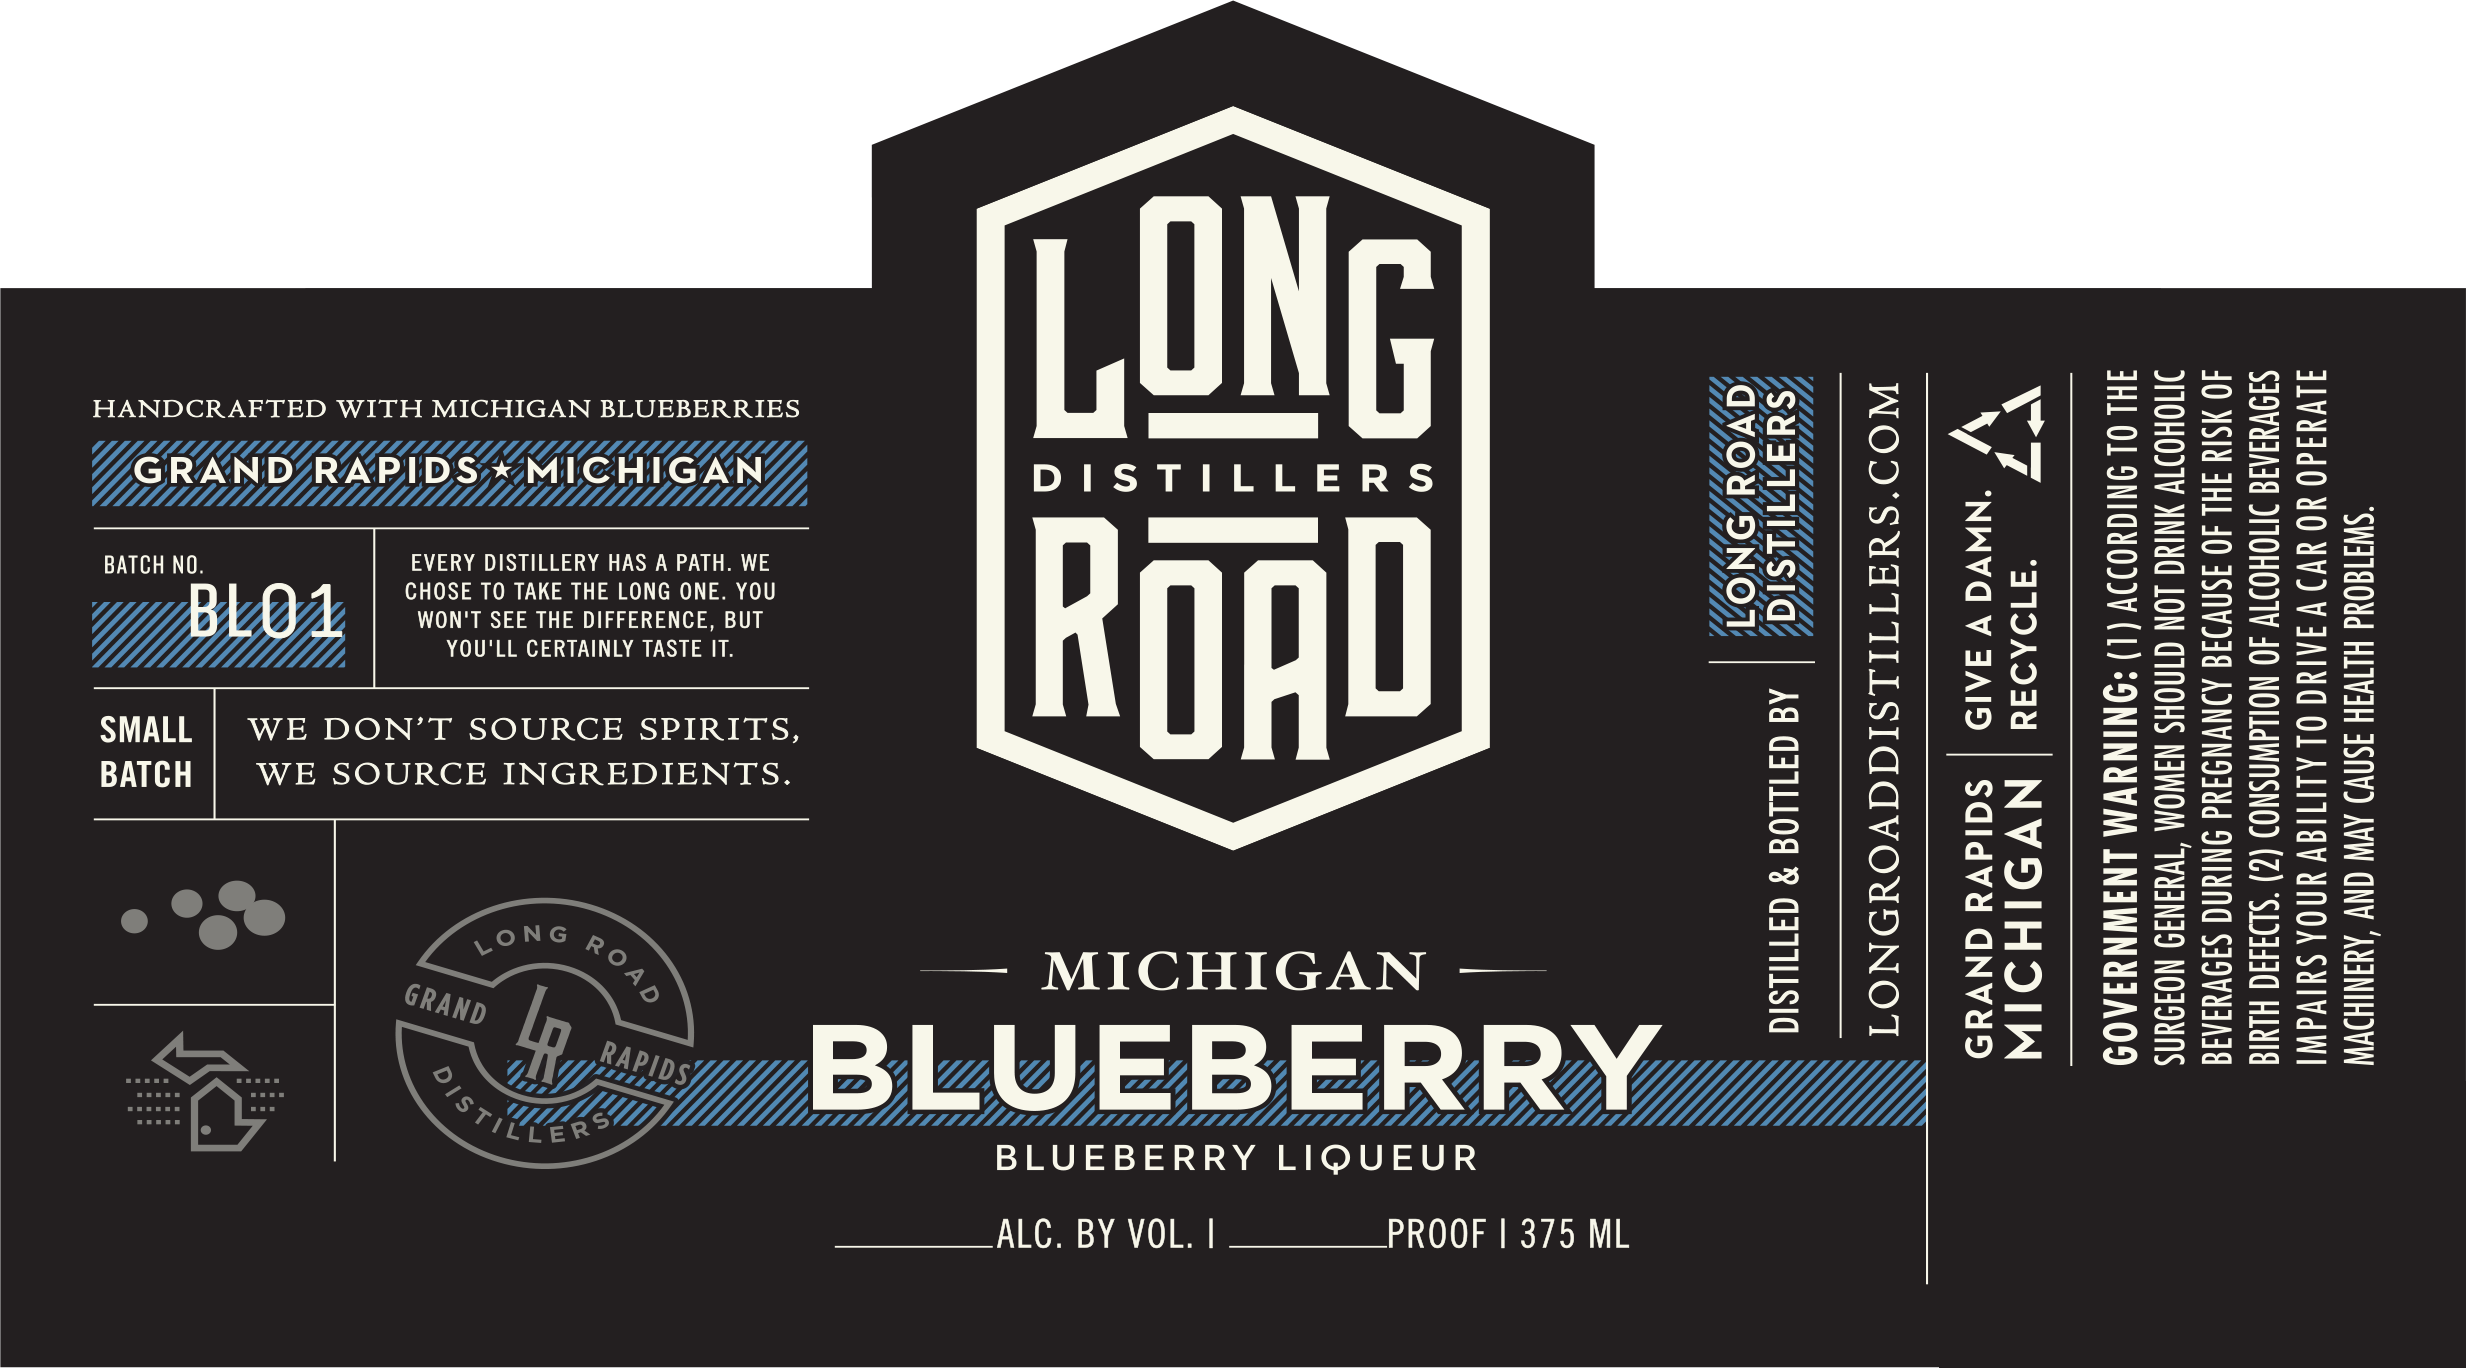 Blueberry Liqueur Long Road Distillers